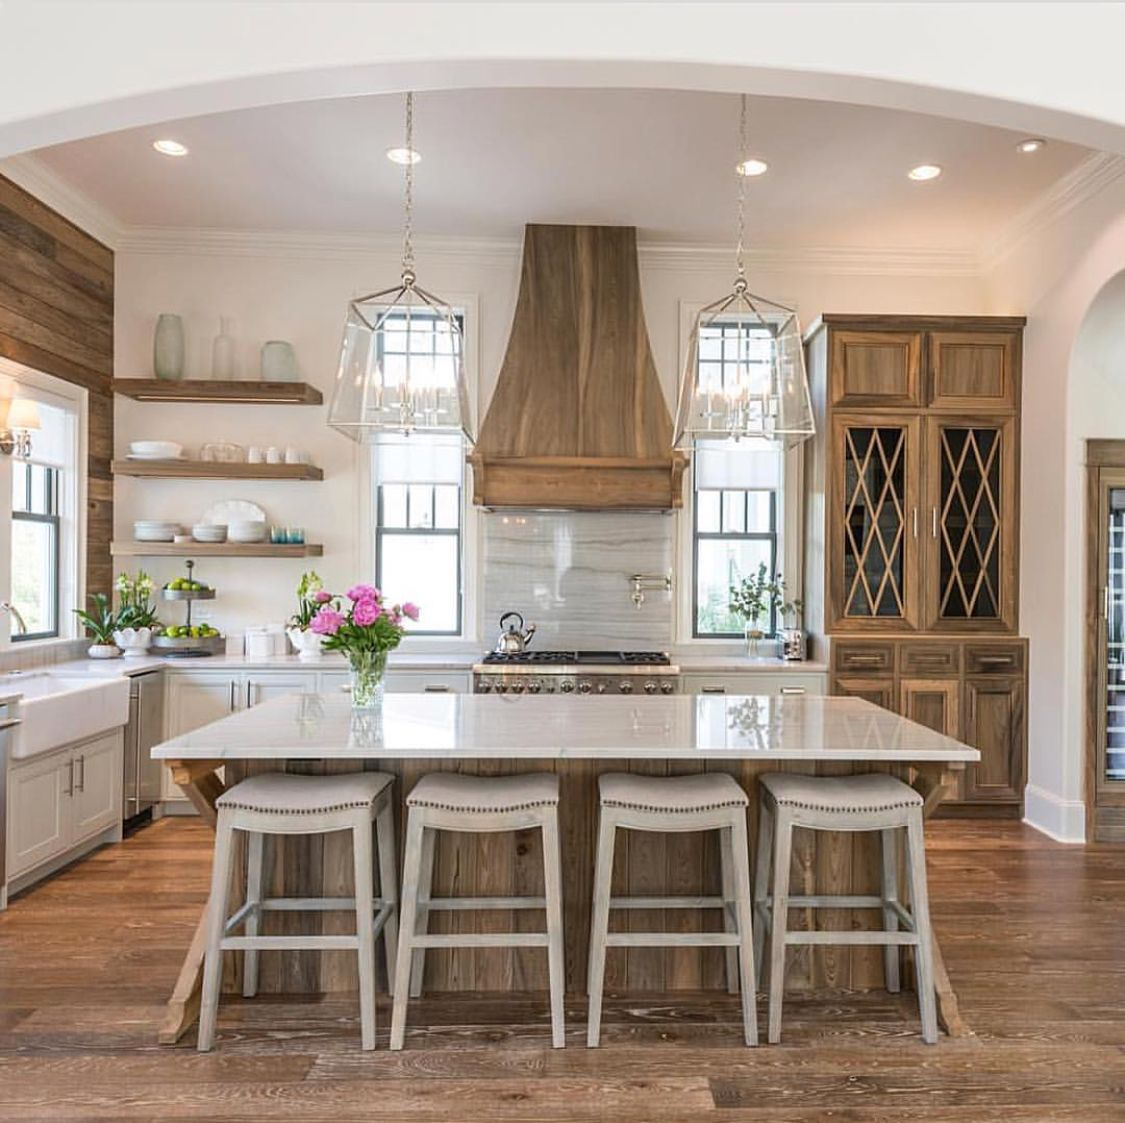 Elevated Rustic For A More Glamorous Farmhouse Appeal Modern Farmhouse Kitchens Builder Grade Kitchen Beautiful Kitchens